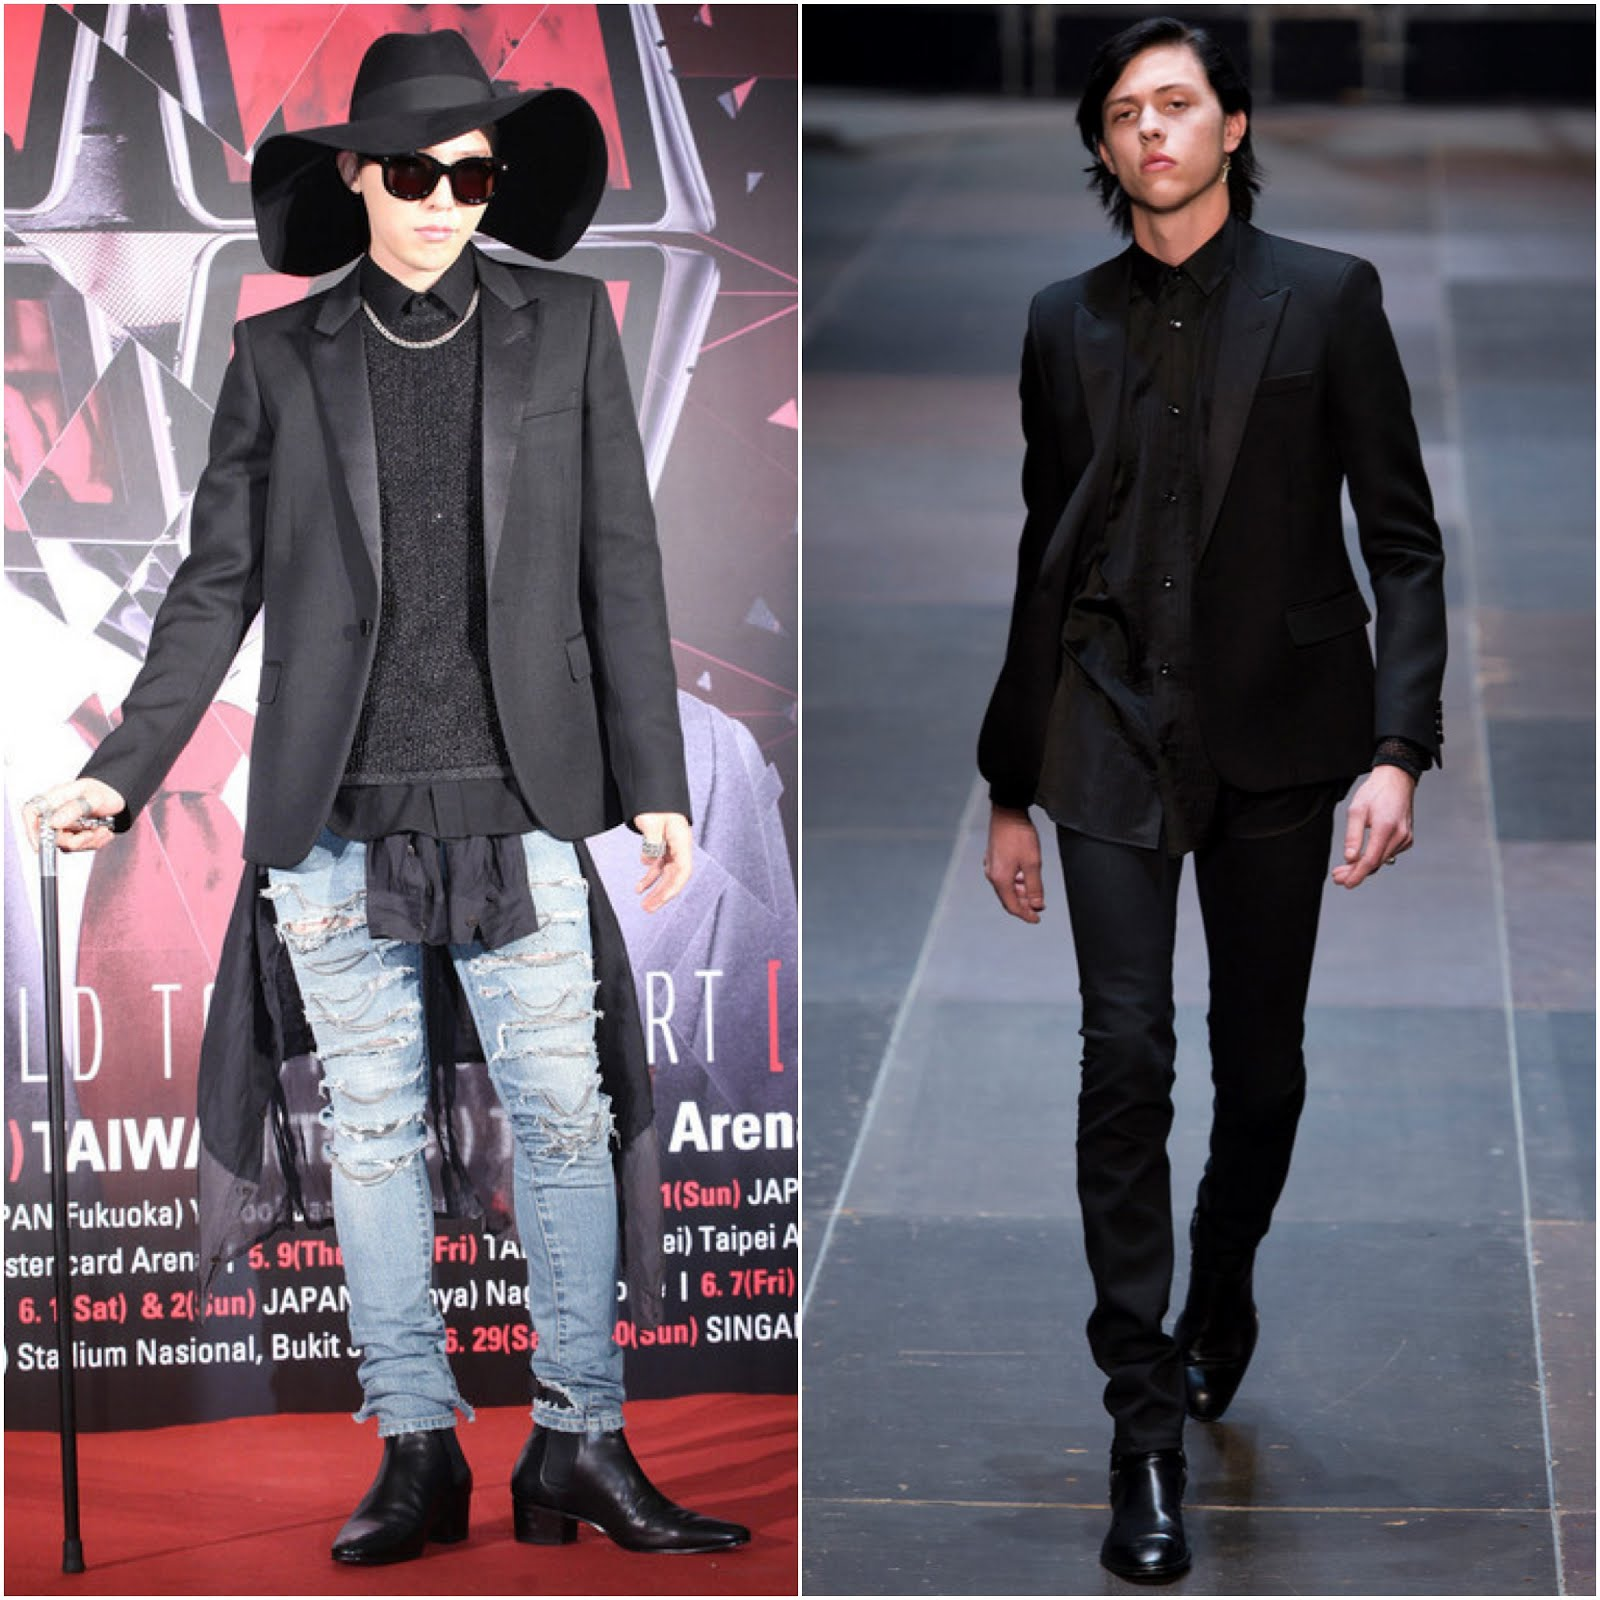 00O00 Menswear Blog http://00O00.blogspot.com G-Dragon Big Bang in Saint Laurent - World Tour Taiwan Promo [GD权志龙台北宣传个唱]